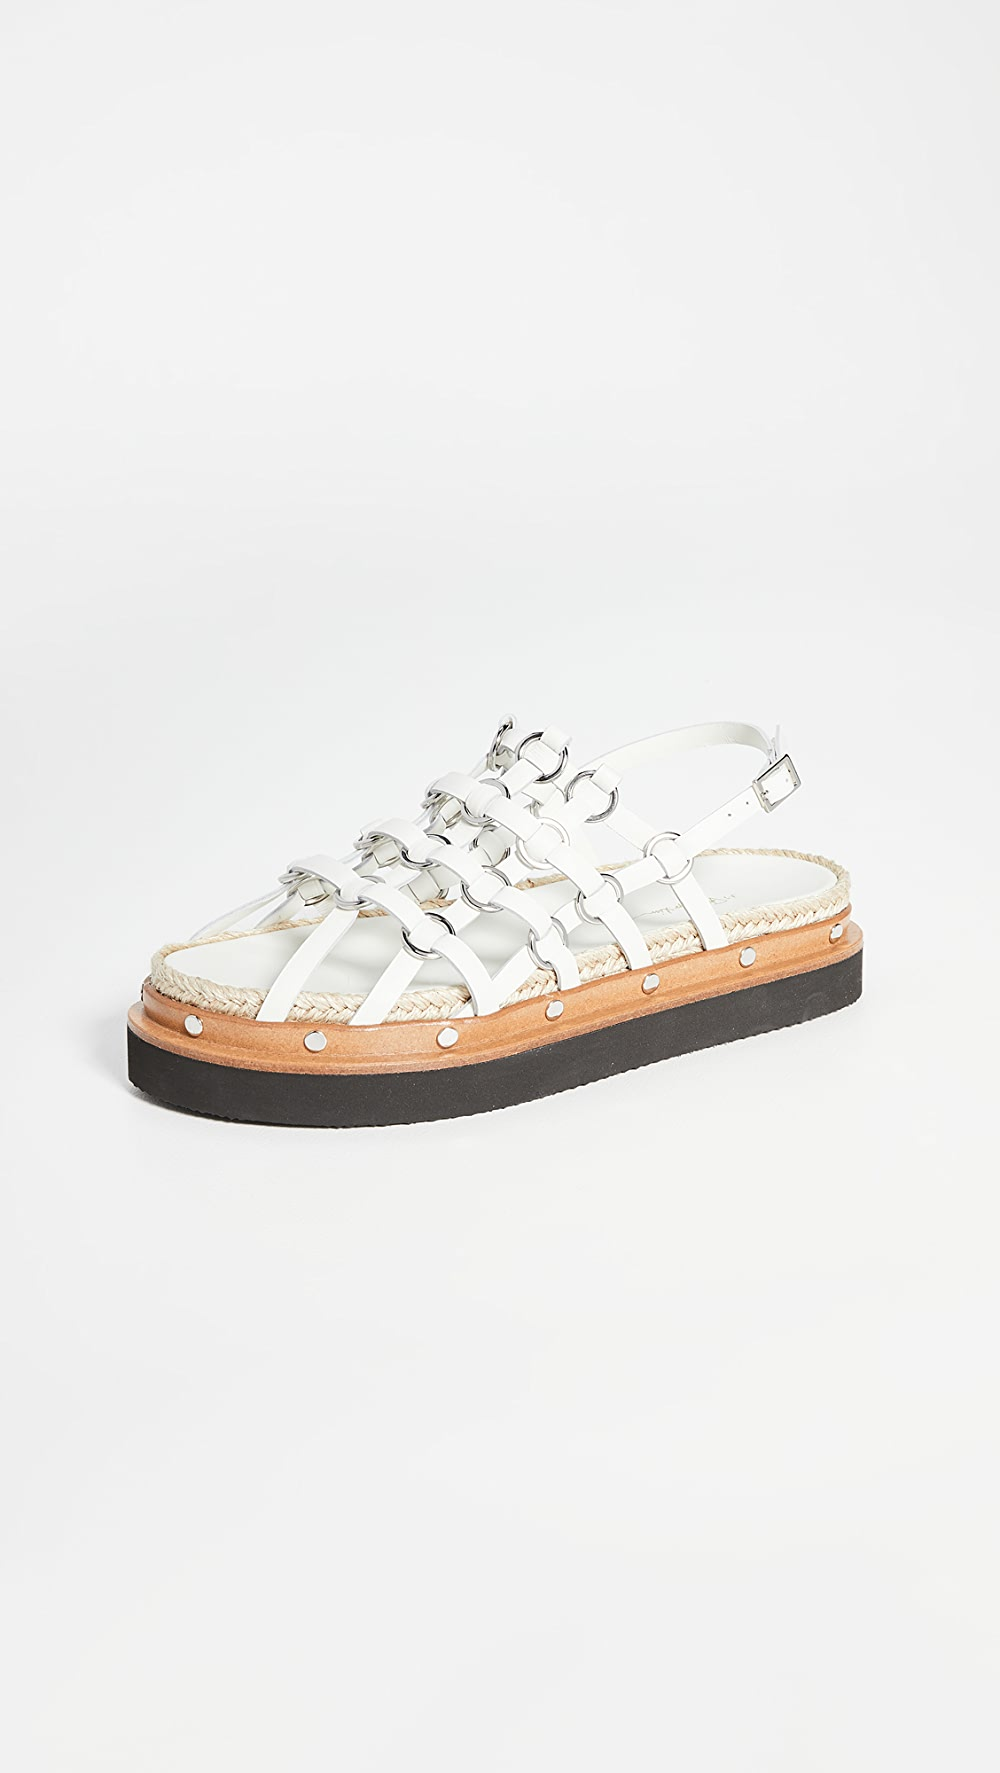 Dashing 3.1 Phillip Lim - Yasmine Cage Espadrille Platform Sandals To Produce An Effect Toward Clear Vision